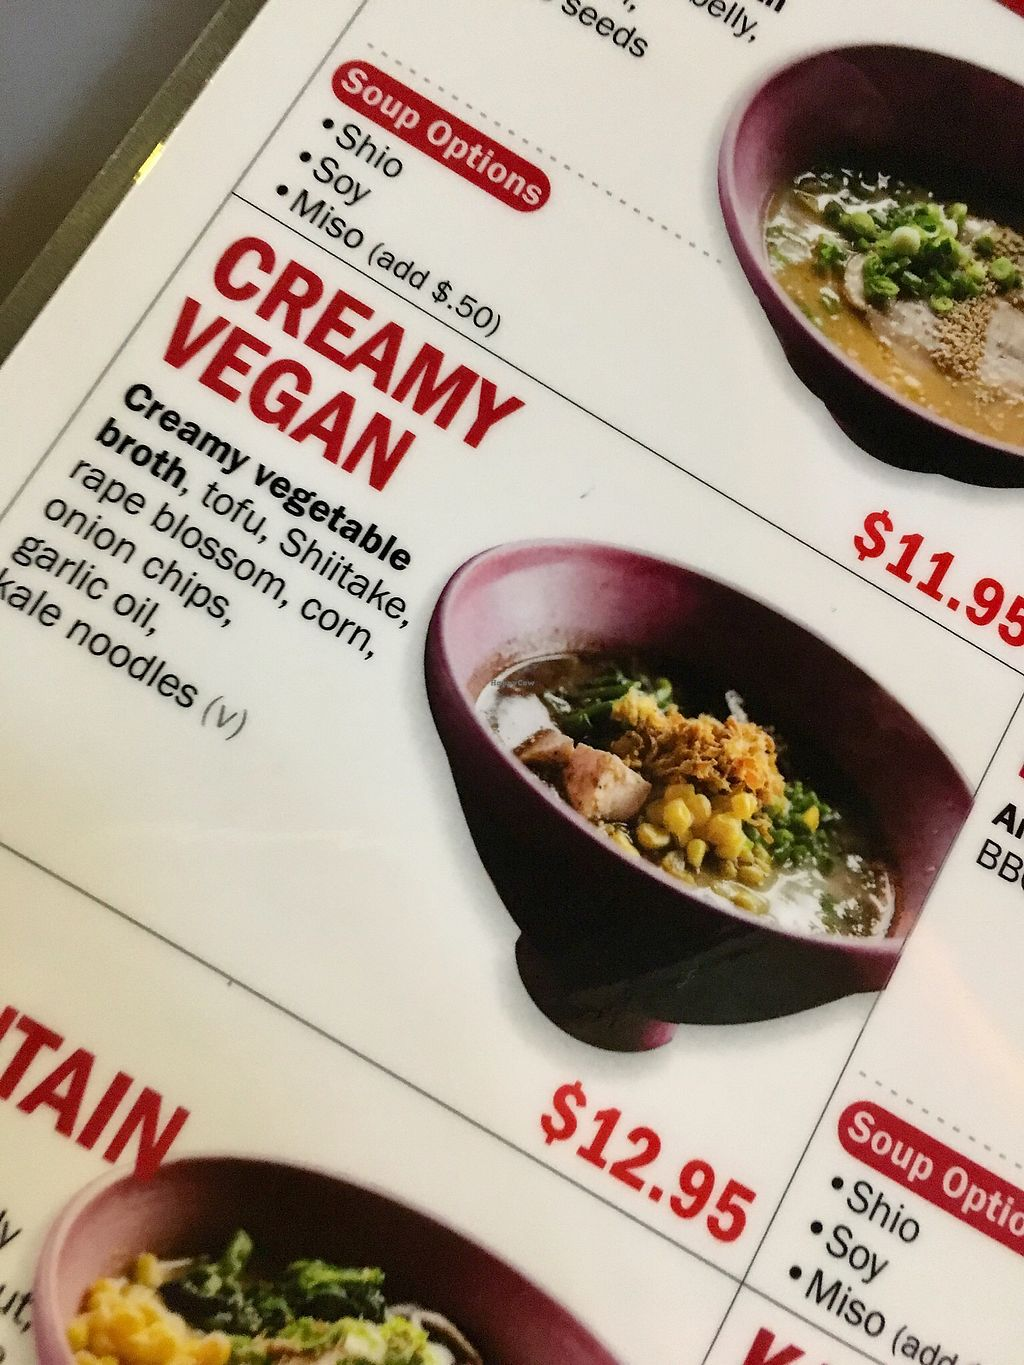 """Photo of Ohyama Ramen  by <a href=""""/members/profile/clovely.vegan"""">clovely.vegan</a> <br/>Creamy Vegan <br/> February 23, 2018  - <a href='/contact/abuse/image/109678/362752'>Report</a>"""